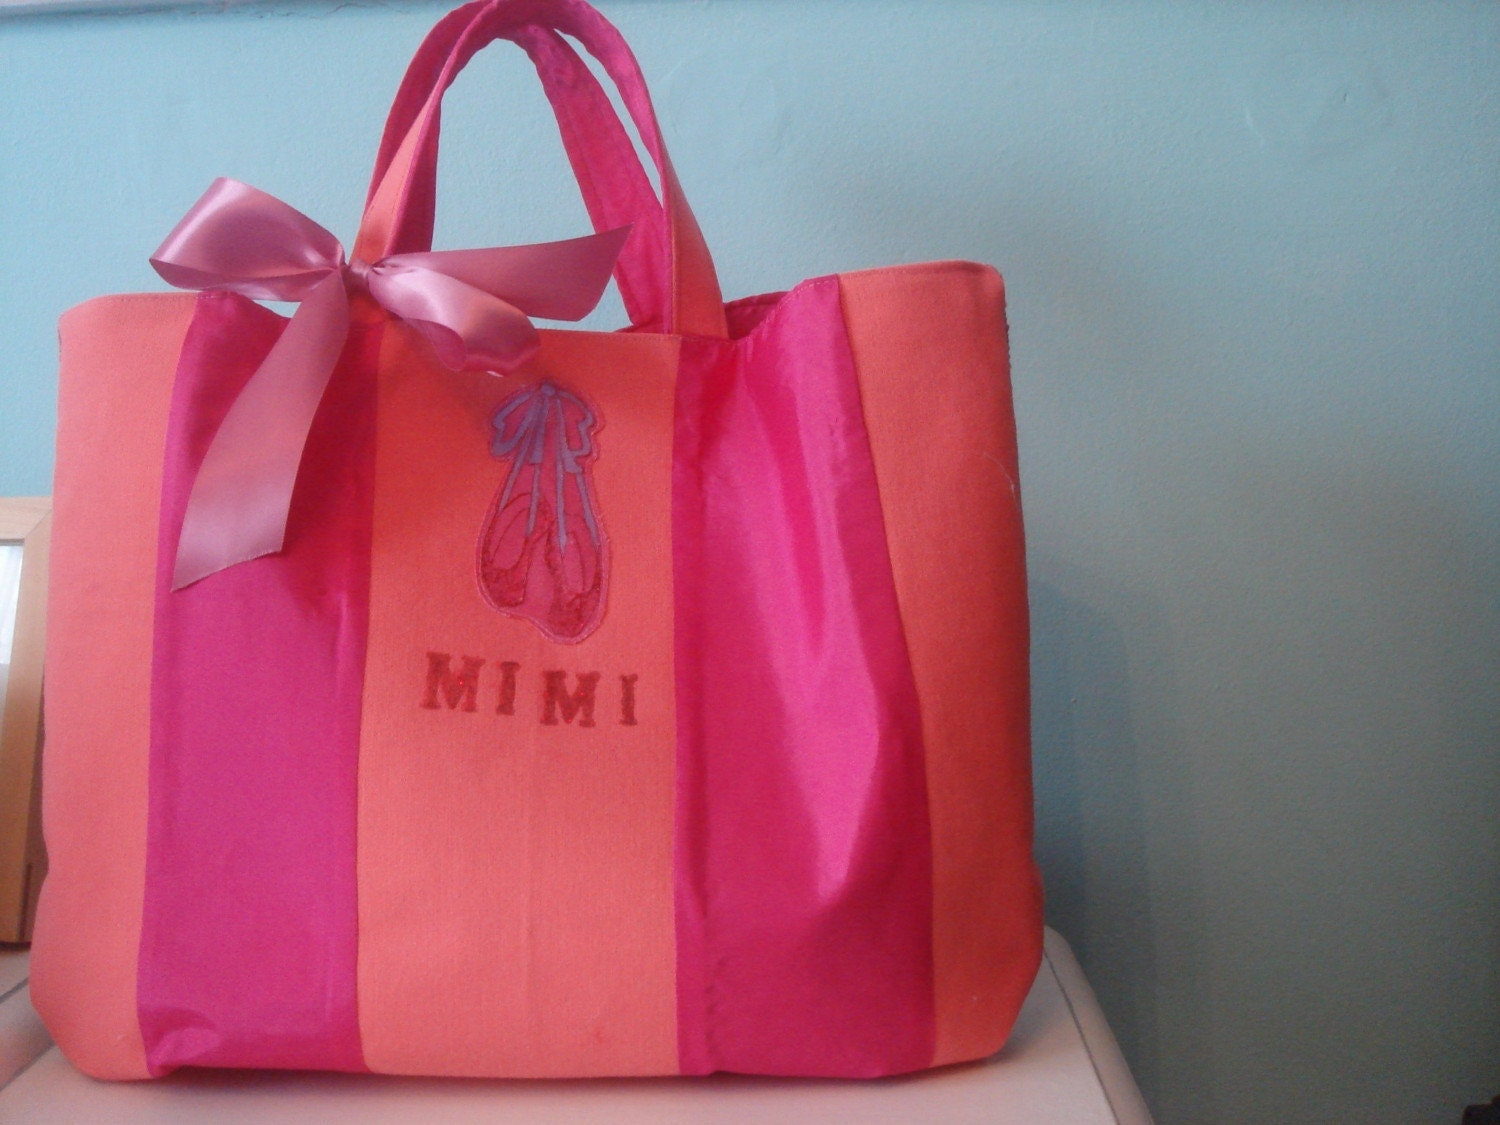 Mimi bag  (personalised ballerina tote bag)